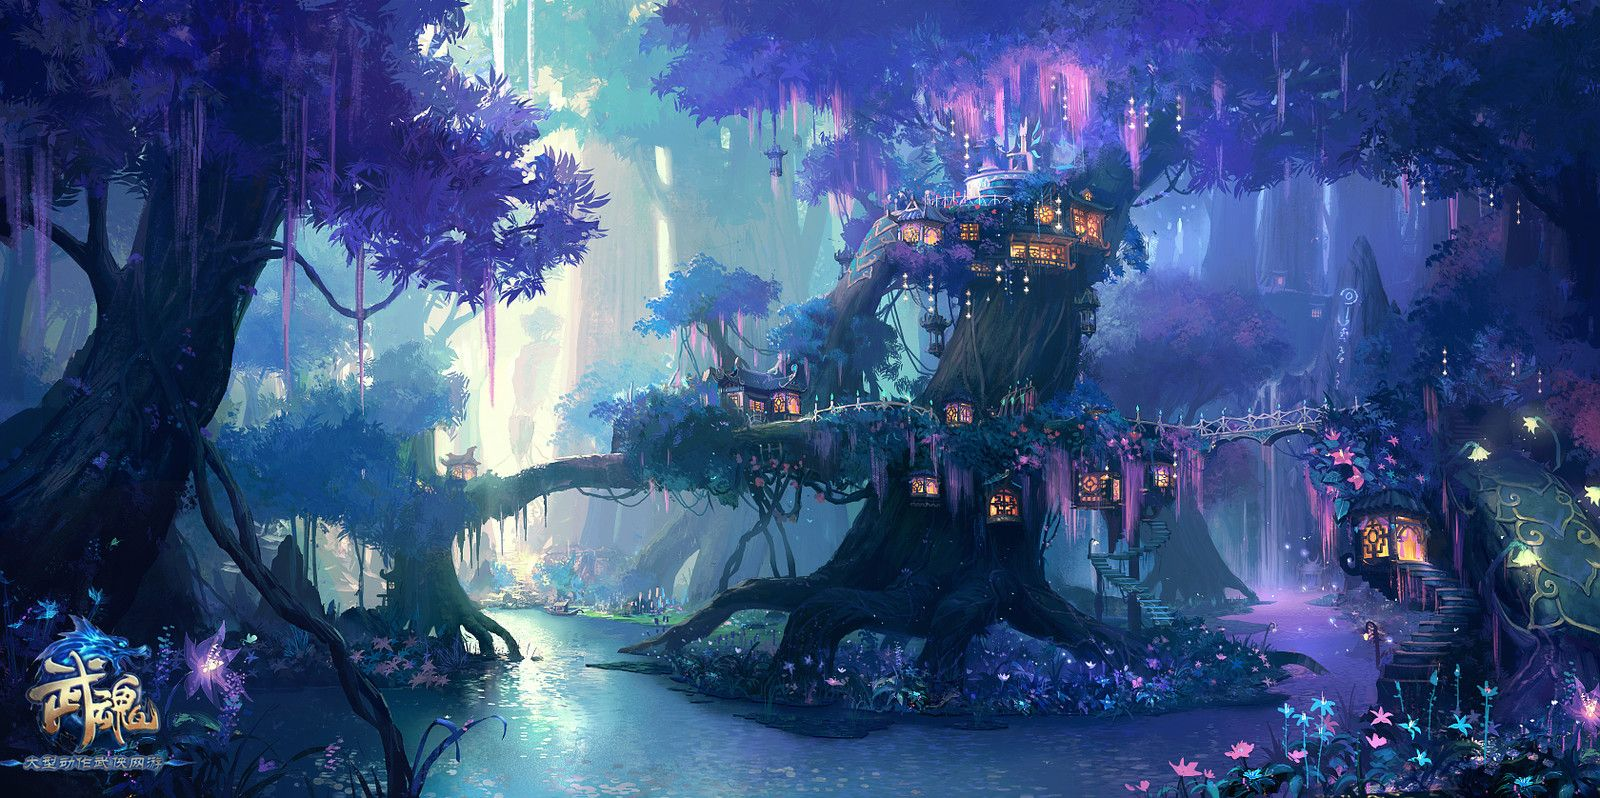 Pin By Leo Chen On Hua Fantasy Art Landscapes Fantasy